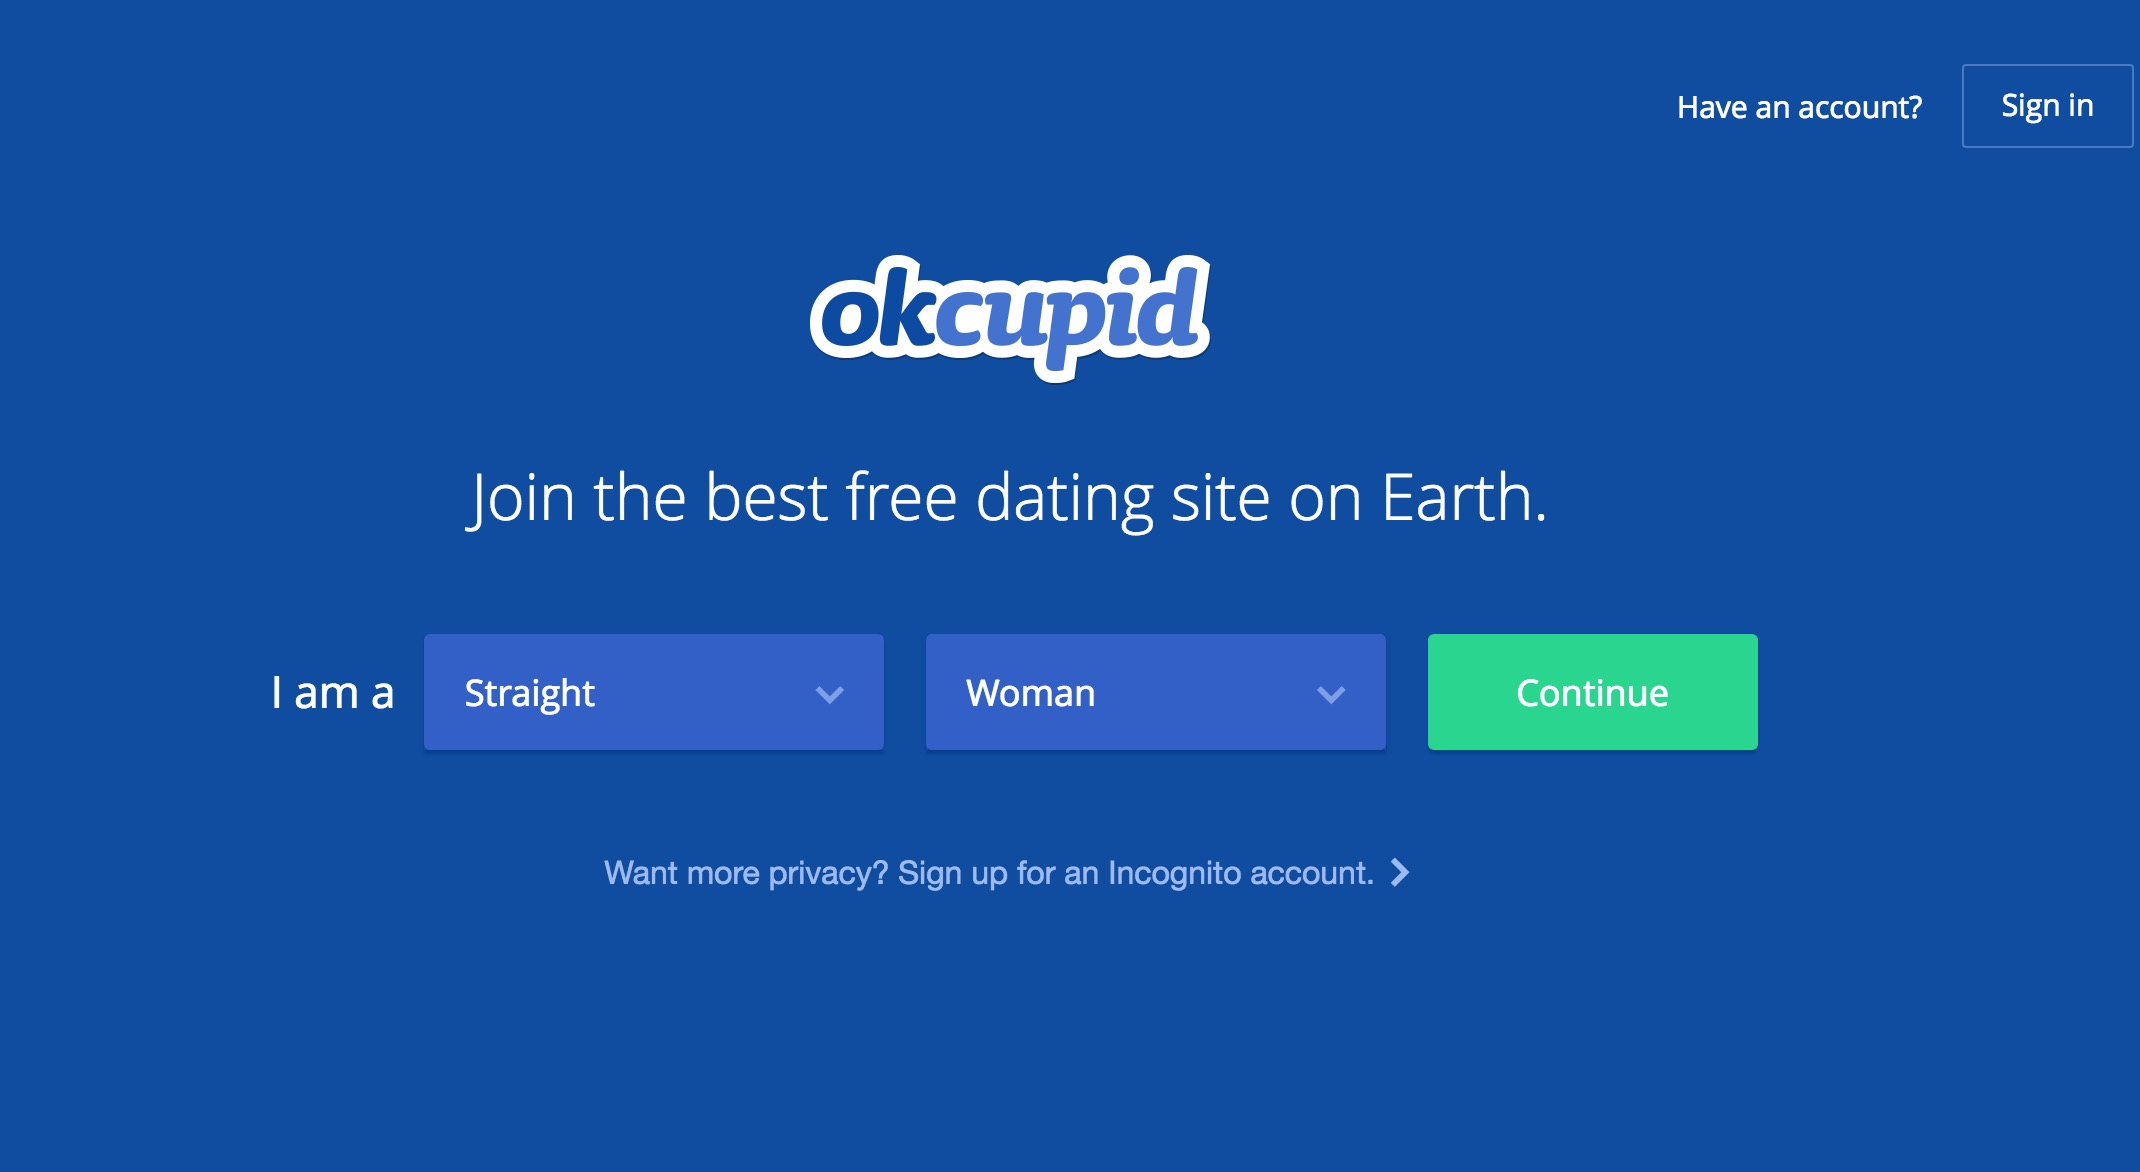 100 free dating sites in ohio